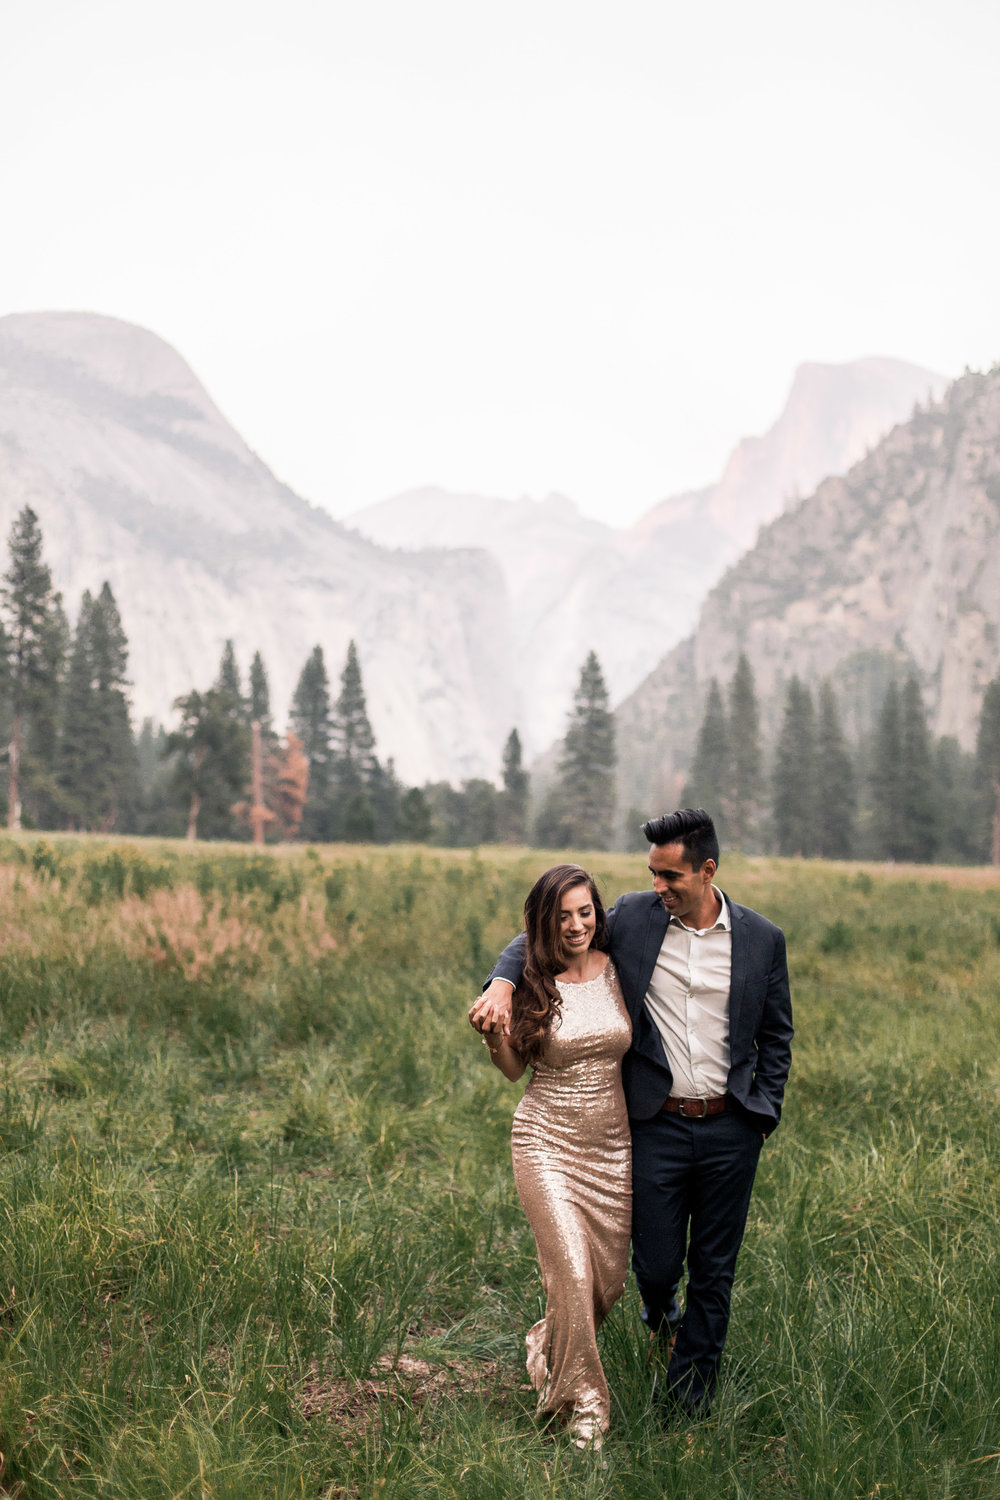 nicole-daacke-photography-yosemite-national-park-adventurous-engagement-session-half-dome-engagement-session-anniversary-photographer-yosemite-elopement-photographer-yosemite-intimate-wedding-photography-40.jpg